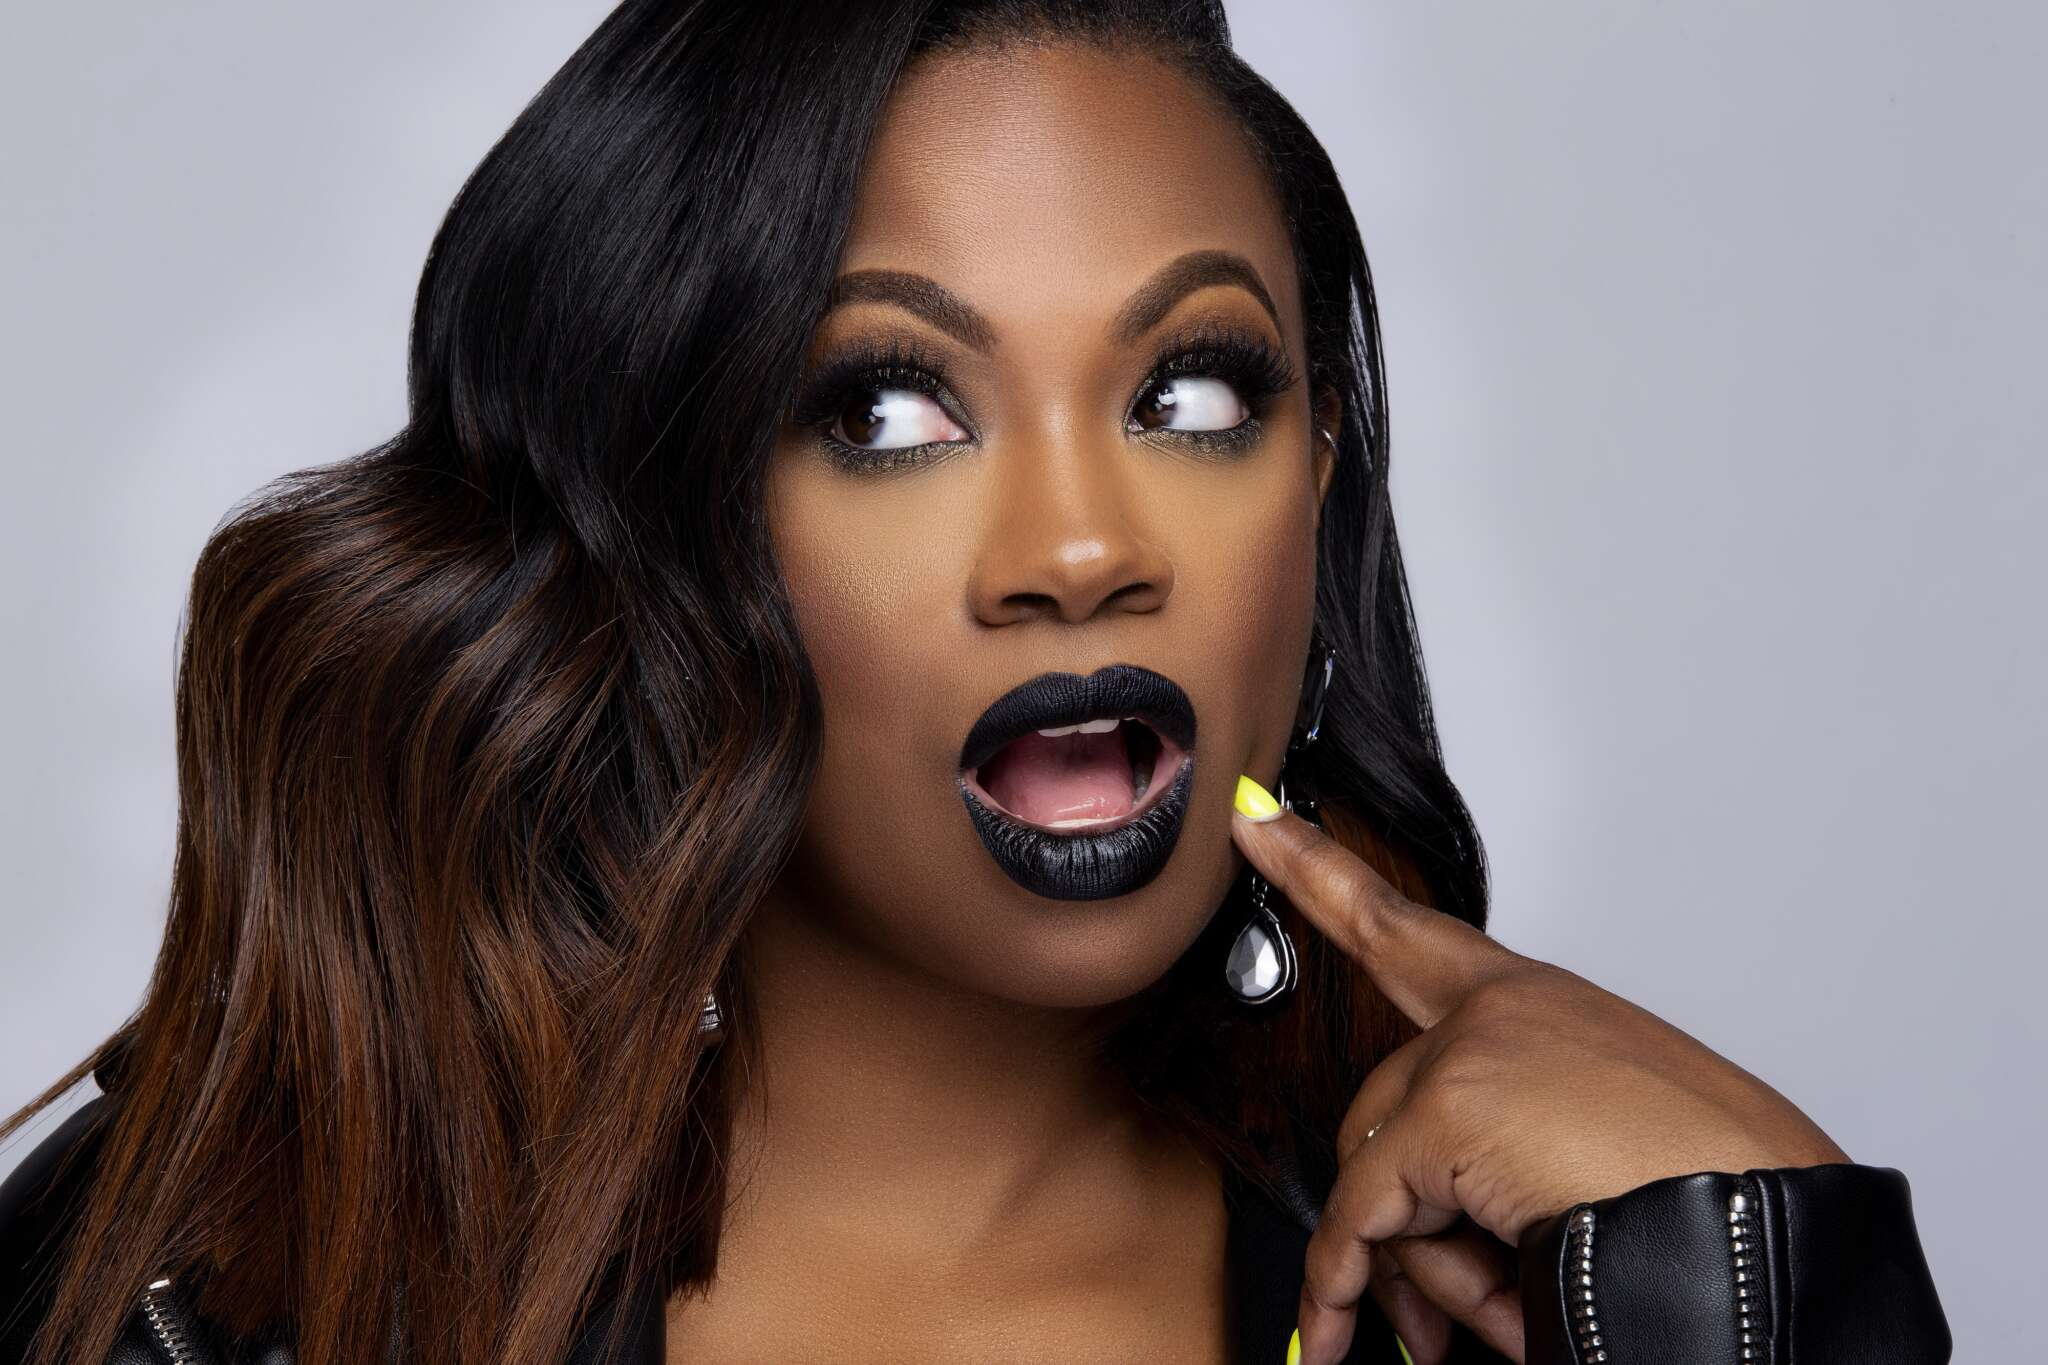 kandi-burruss-tells-fans-that-bravo-tv-aftershow-looks-are-out